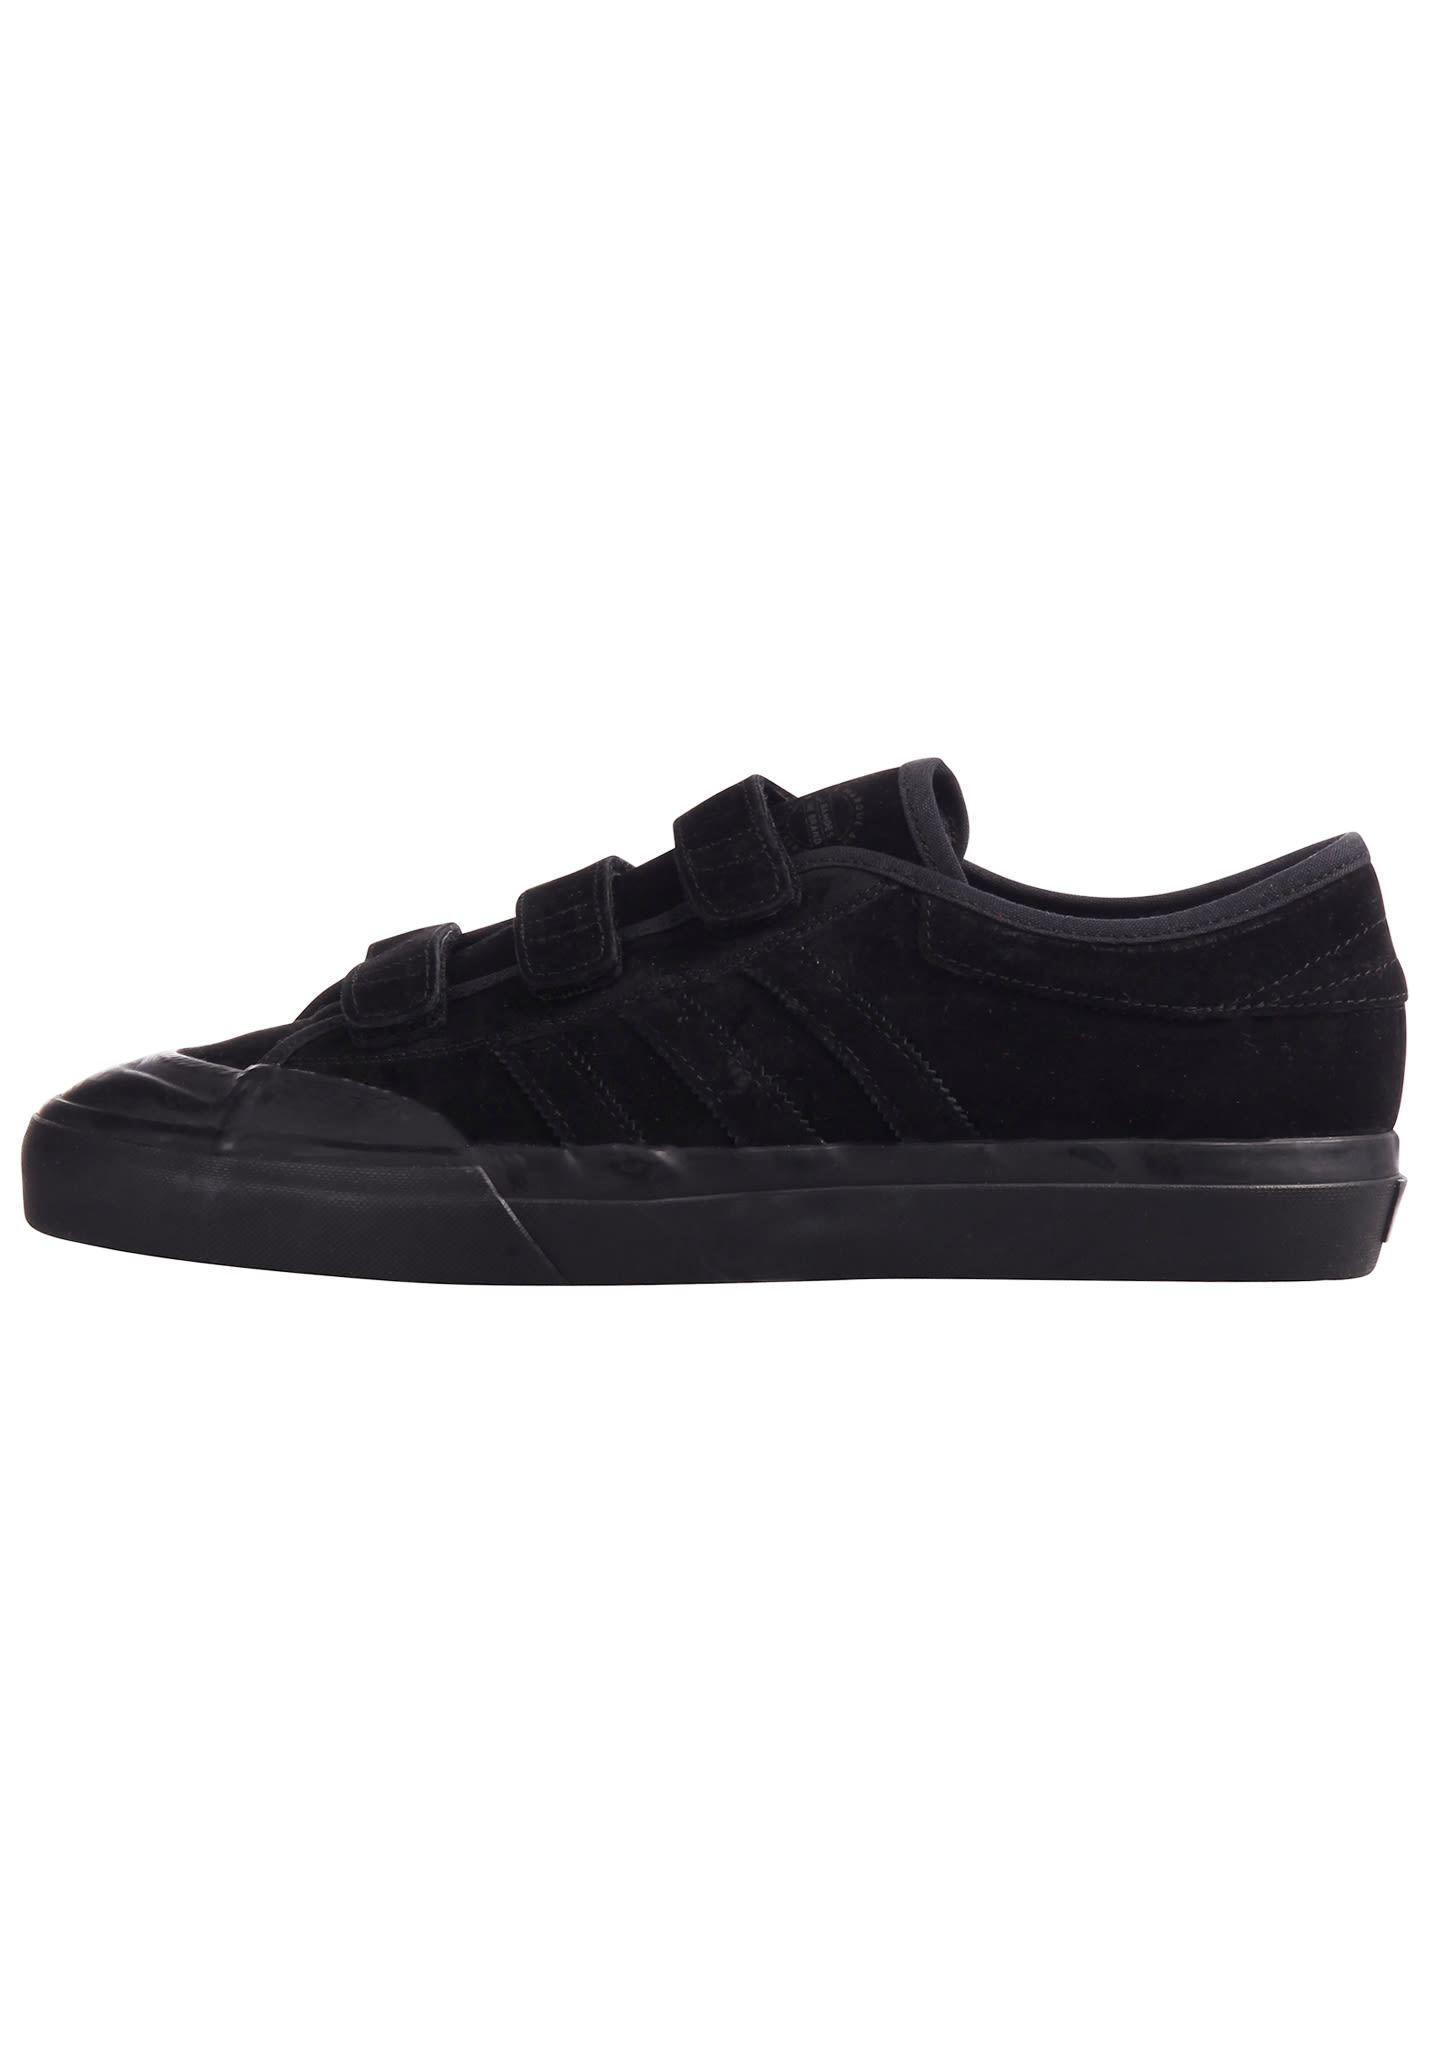 8194334f2cca Adidas Skateboarding Matchcourt CF - Sneakers for Men - Black - Planet  Sports